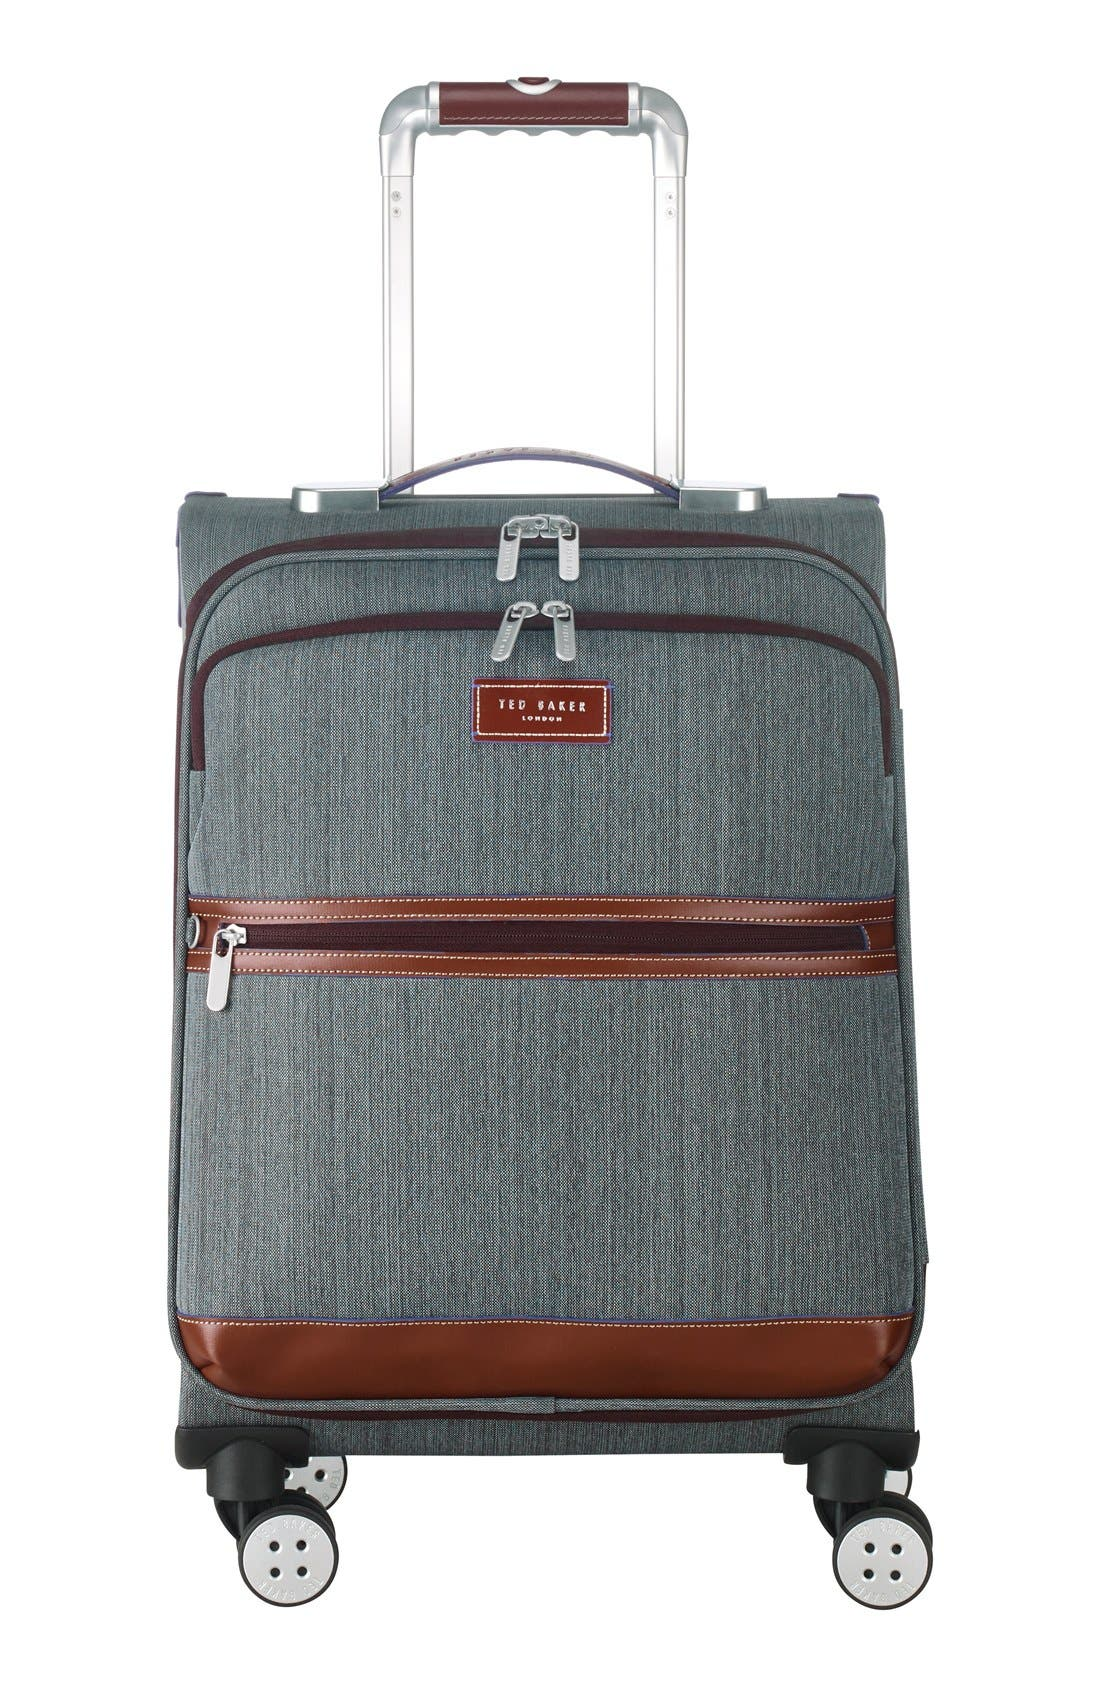 TED BAKER LONDON 'Small Falconwood Grey' Four Wheel